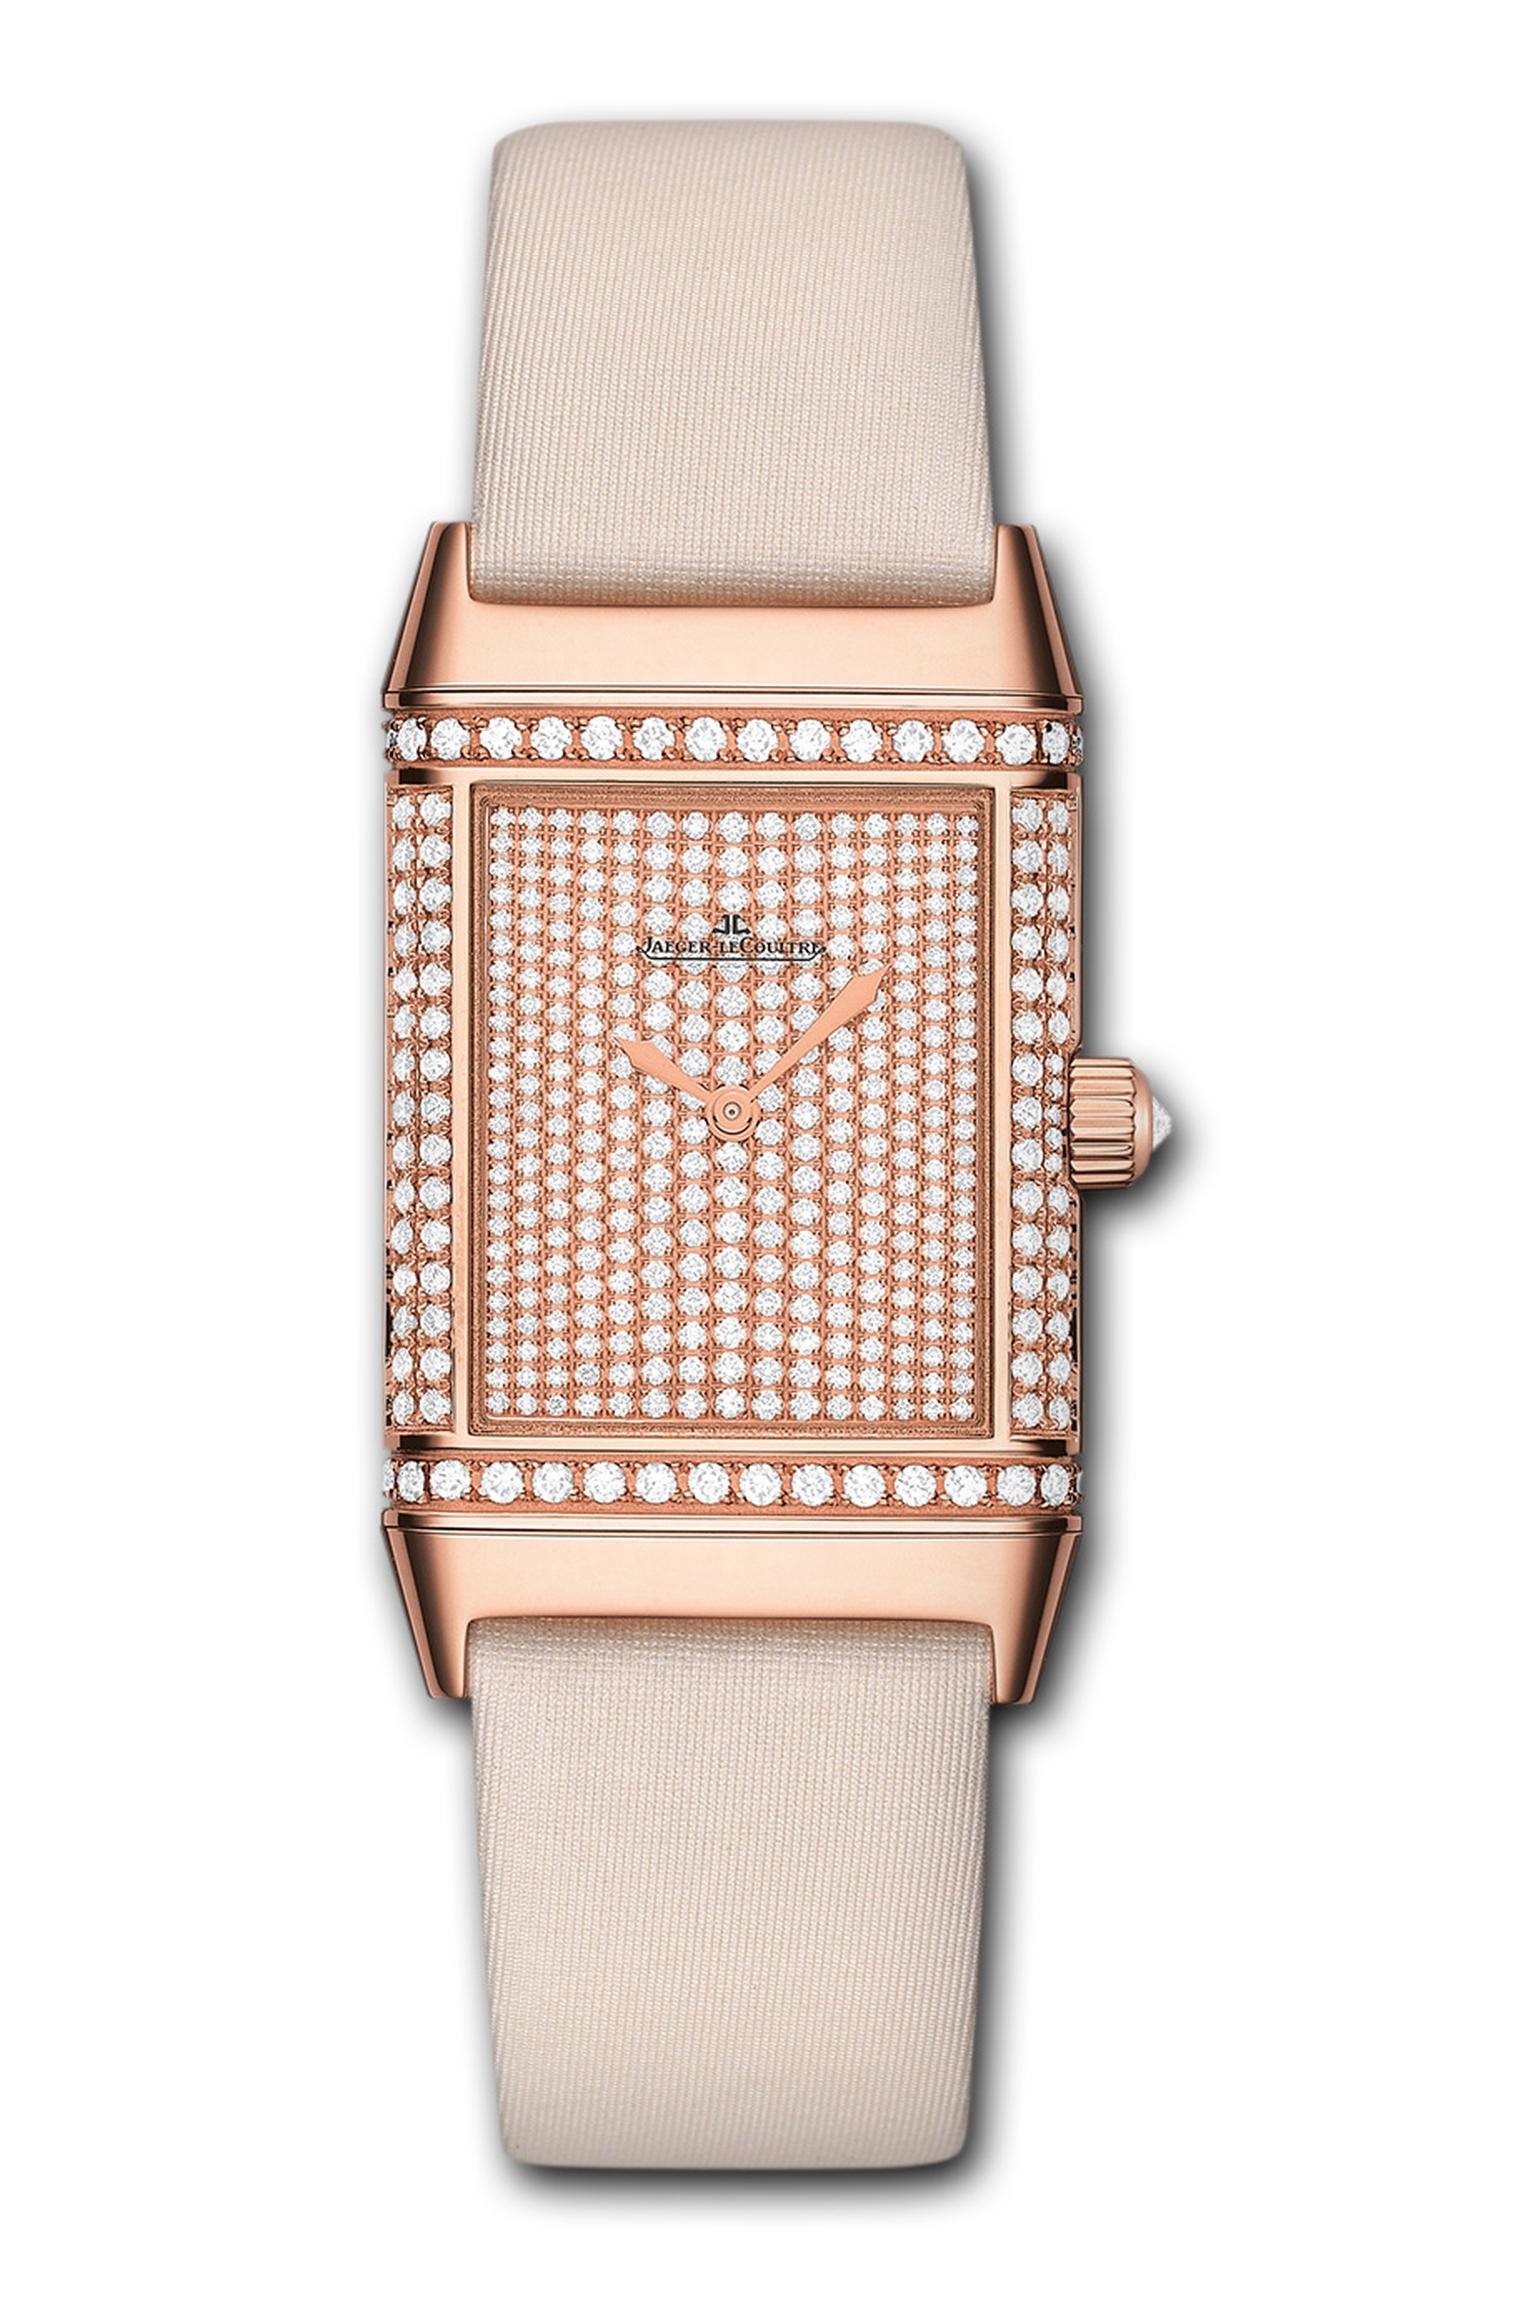 The Jaeger-LeCoultre Reverso Duetto Classique watch is a true chameleon, allowing her to change from a daytime-inspired dial to a more elegant black and diamond-studded dial for evenings by simply flipping the swivel case. Available in four different fini